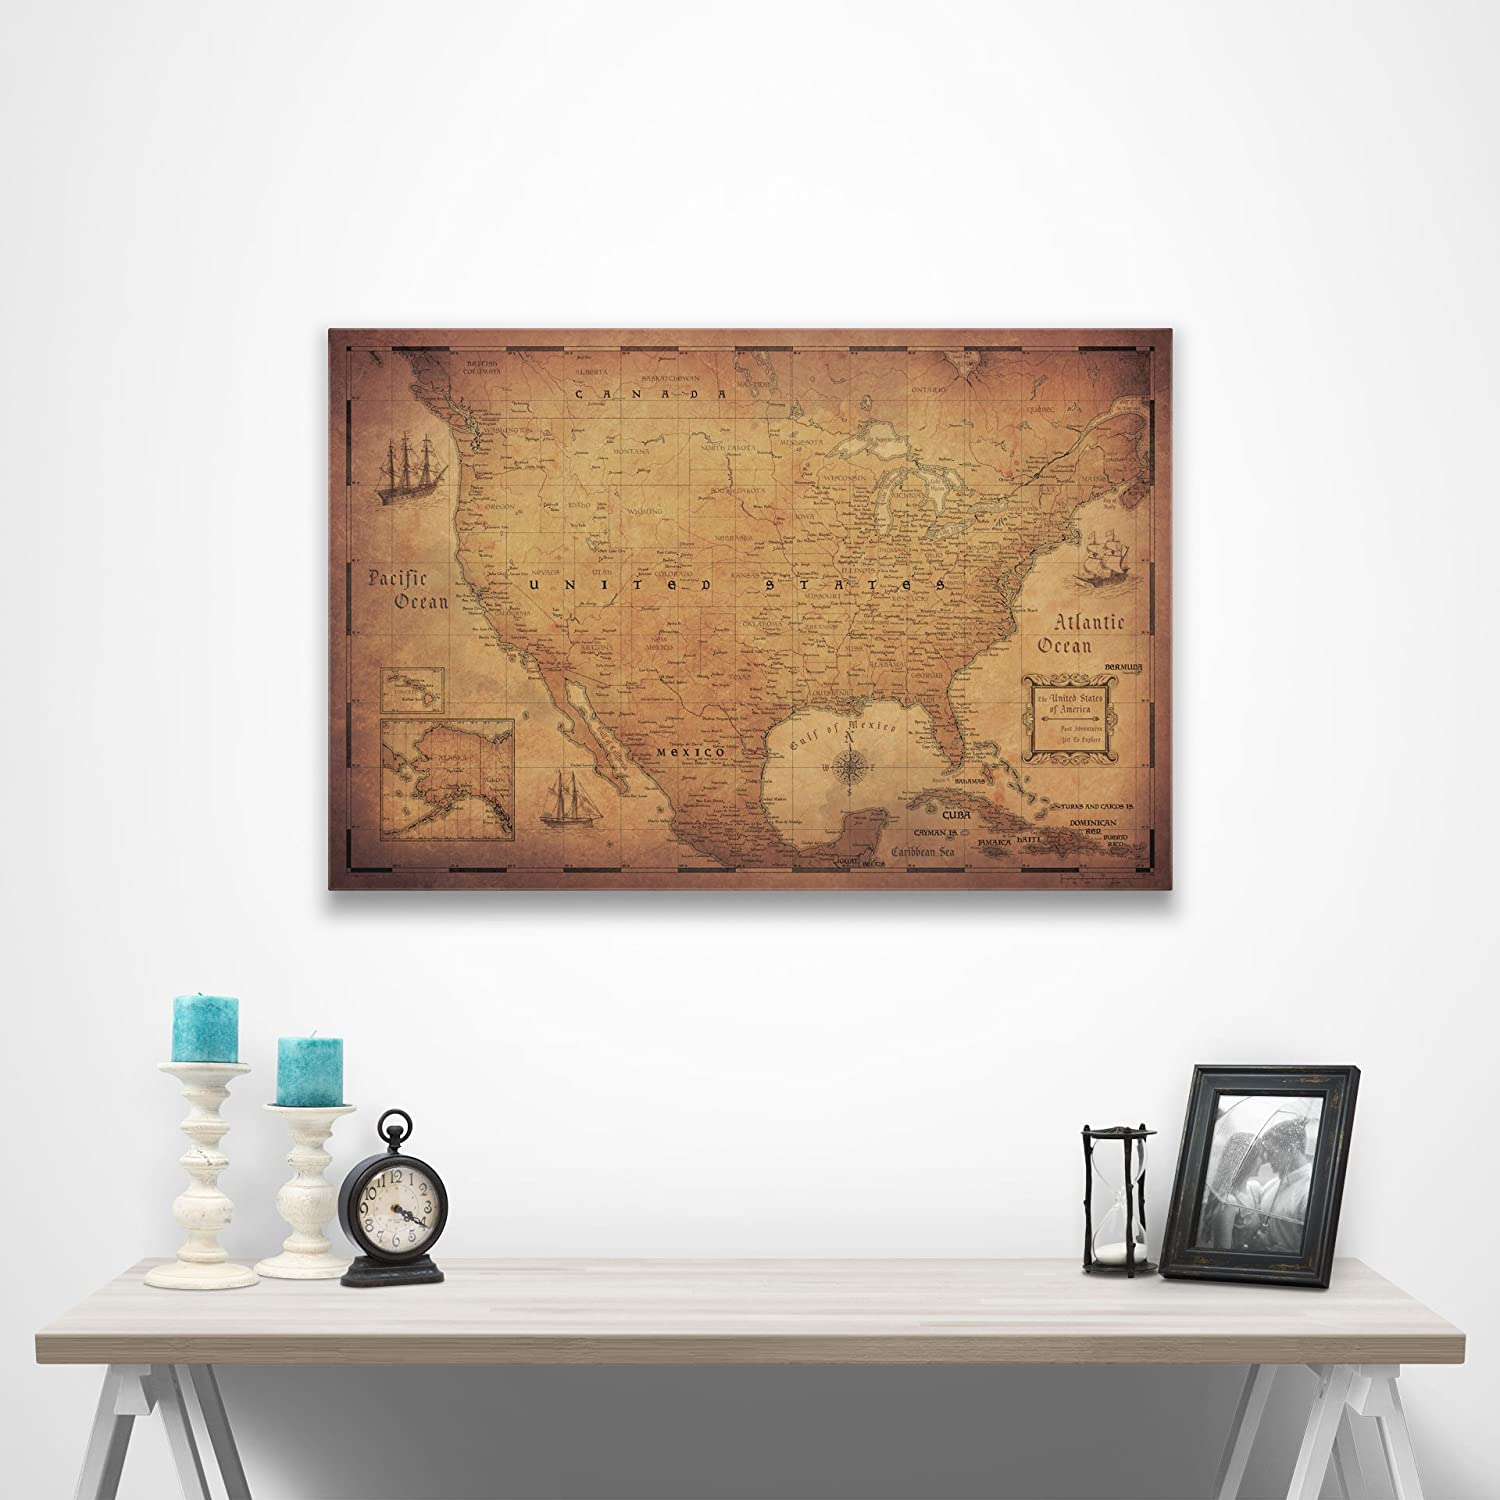 Us Map On Cork Board.Amazon Com Conquest Maps Map Cork Board Travel Map Of United